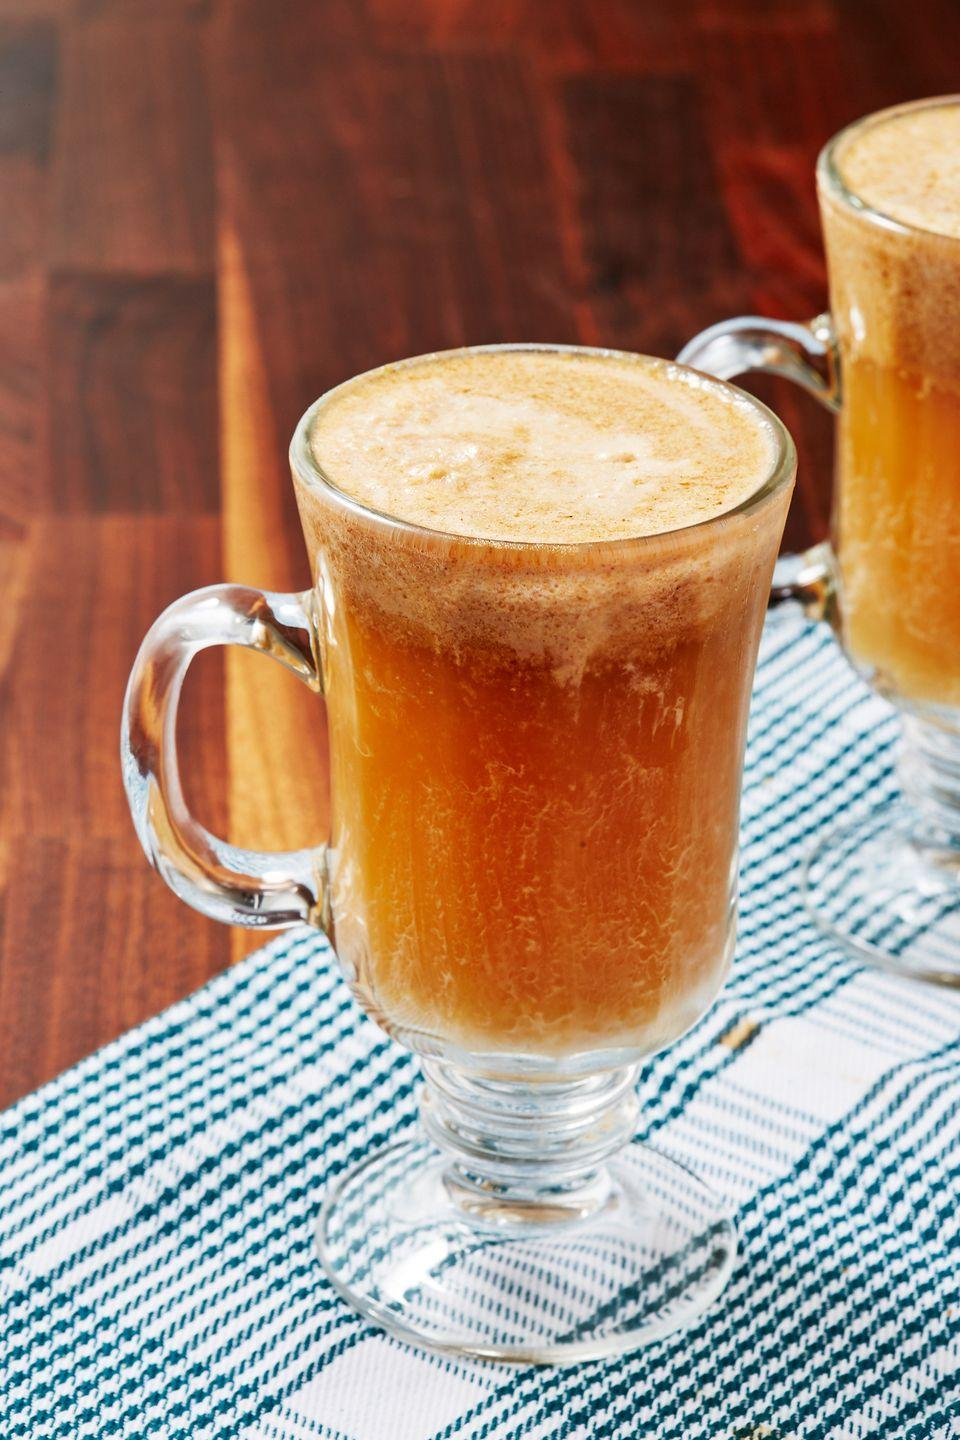 "<p>The perfect way to end the meal.</p><p>Get the recipe from <a href=""https://www.delish.com/cooking/recipes/a50396/hot-buttered-rum-recipe/"" rel=""nofollow noopener"" target=""_blank"" data-ylk=""slk:Delish"" class=""link rapid-noclick-resp"">Delish</a>. </p>"